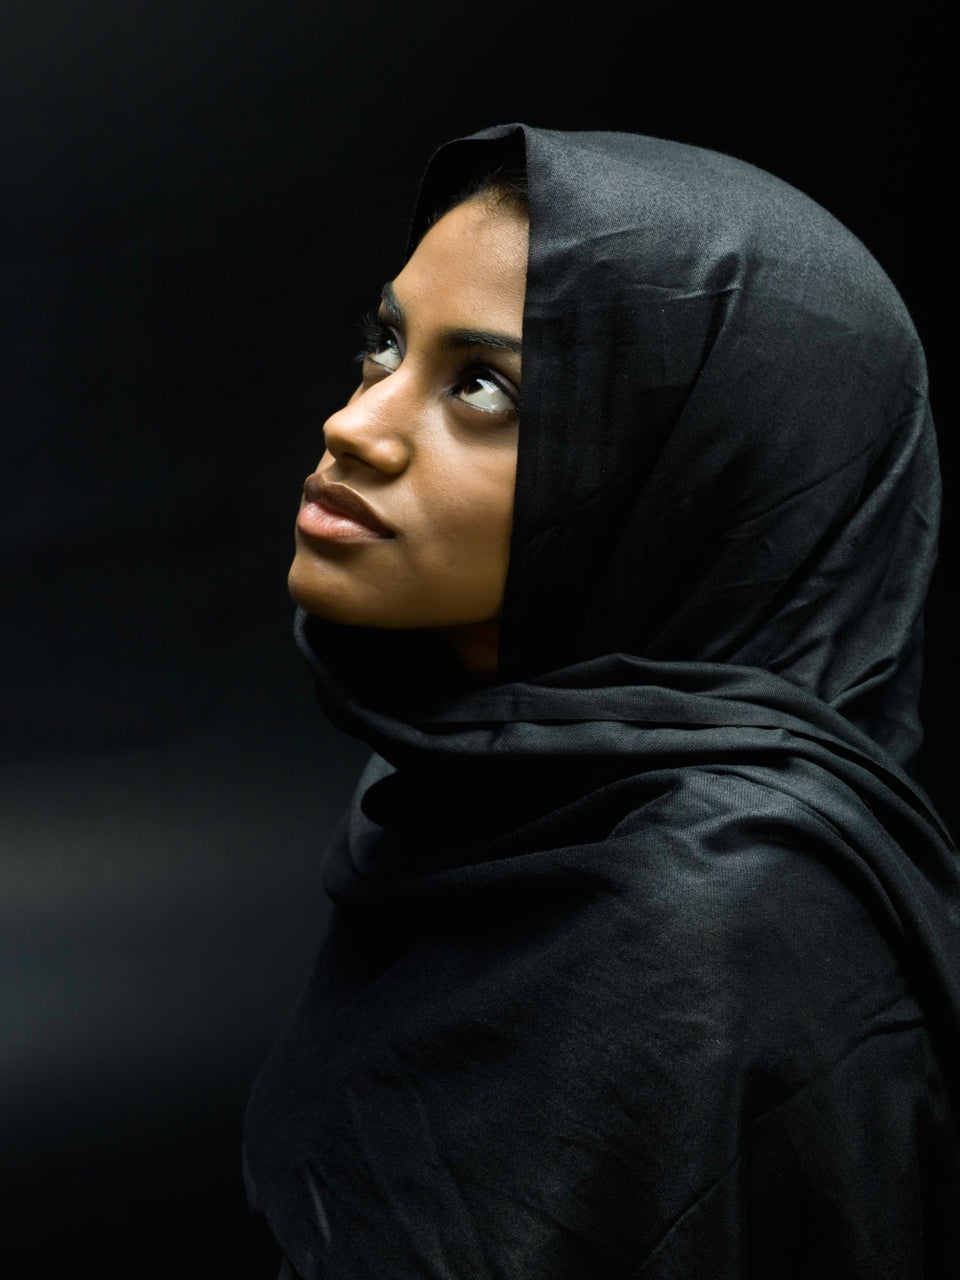 How to deal with pop culture beauty standards when you're a black Muslim girl